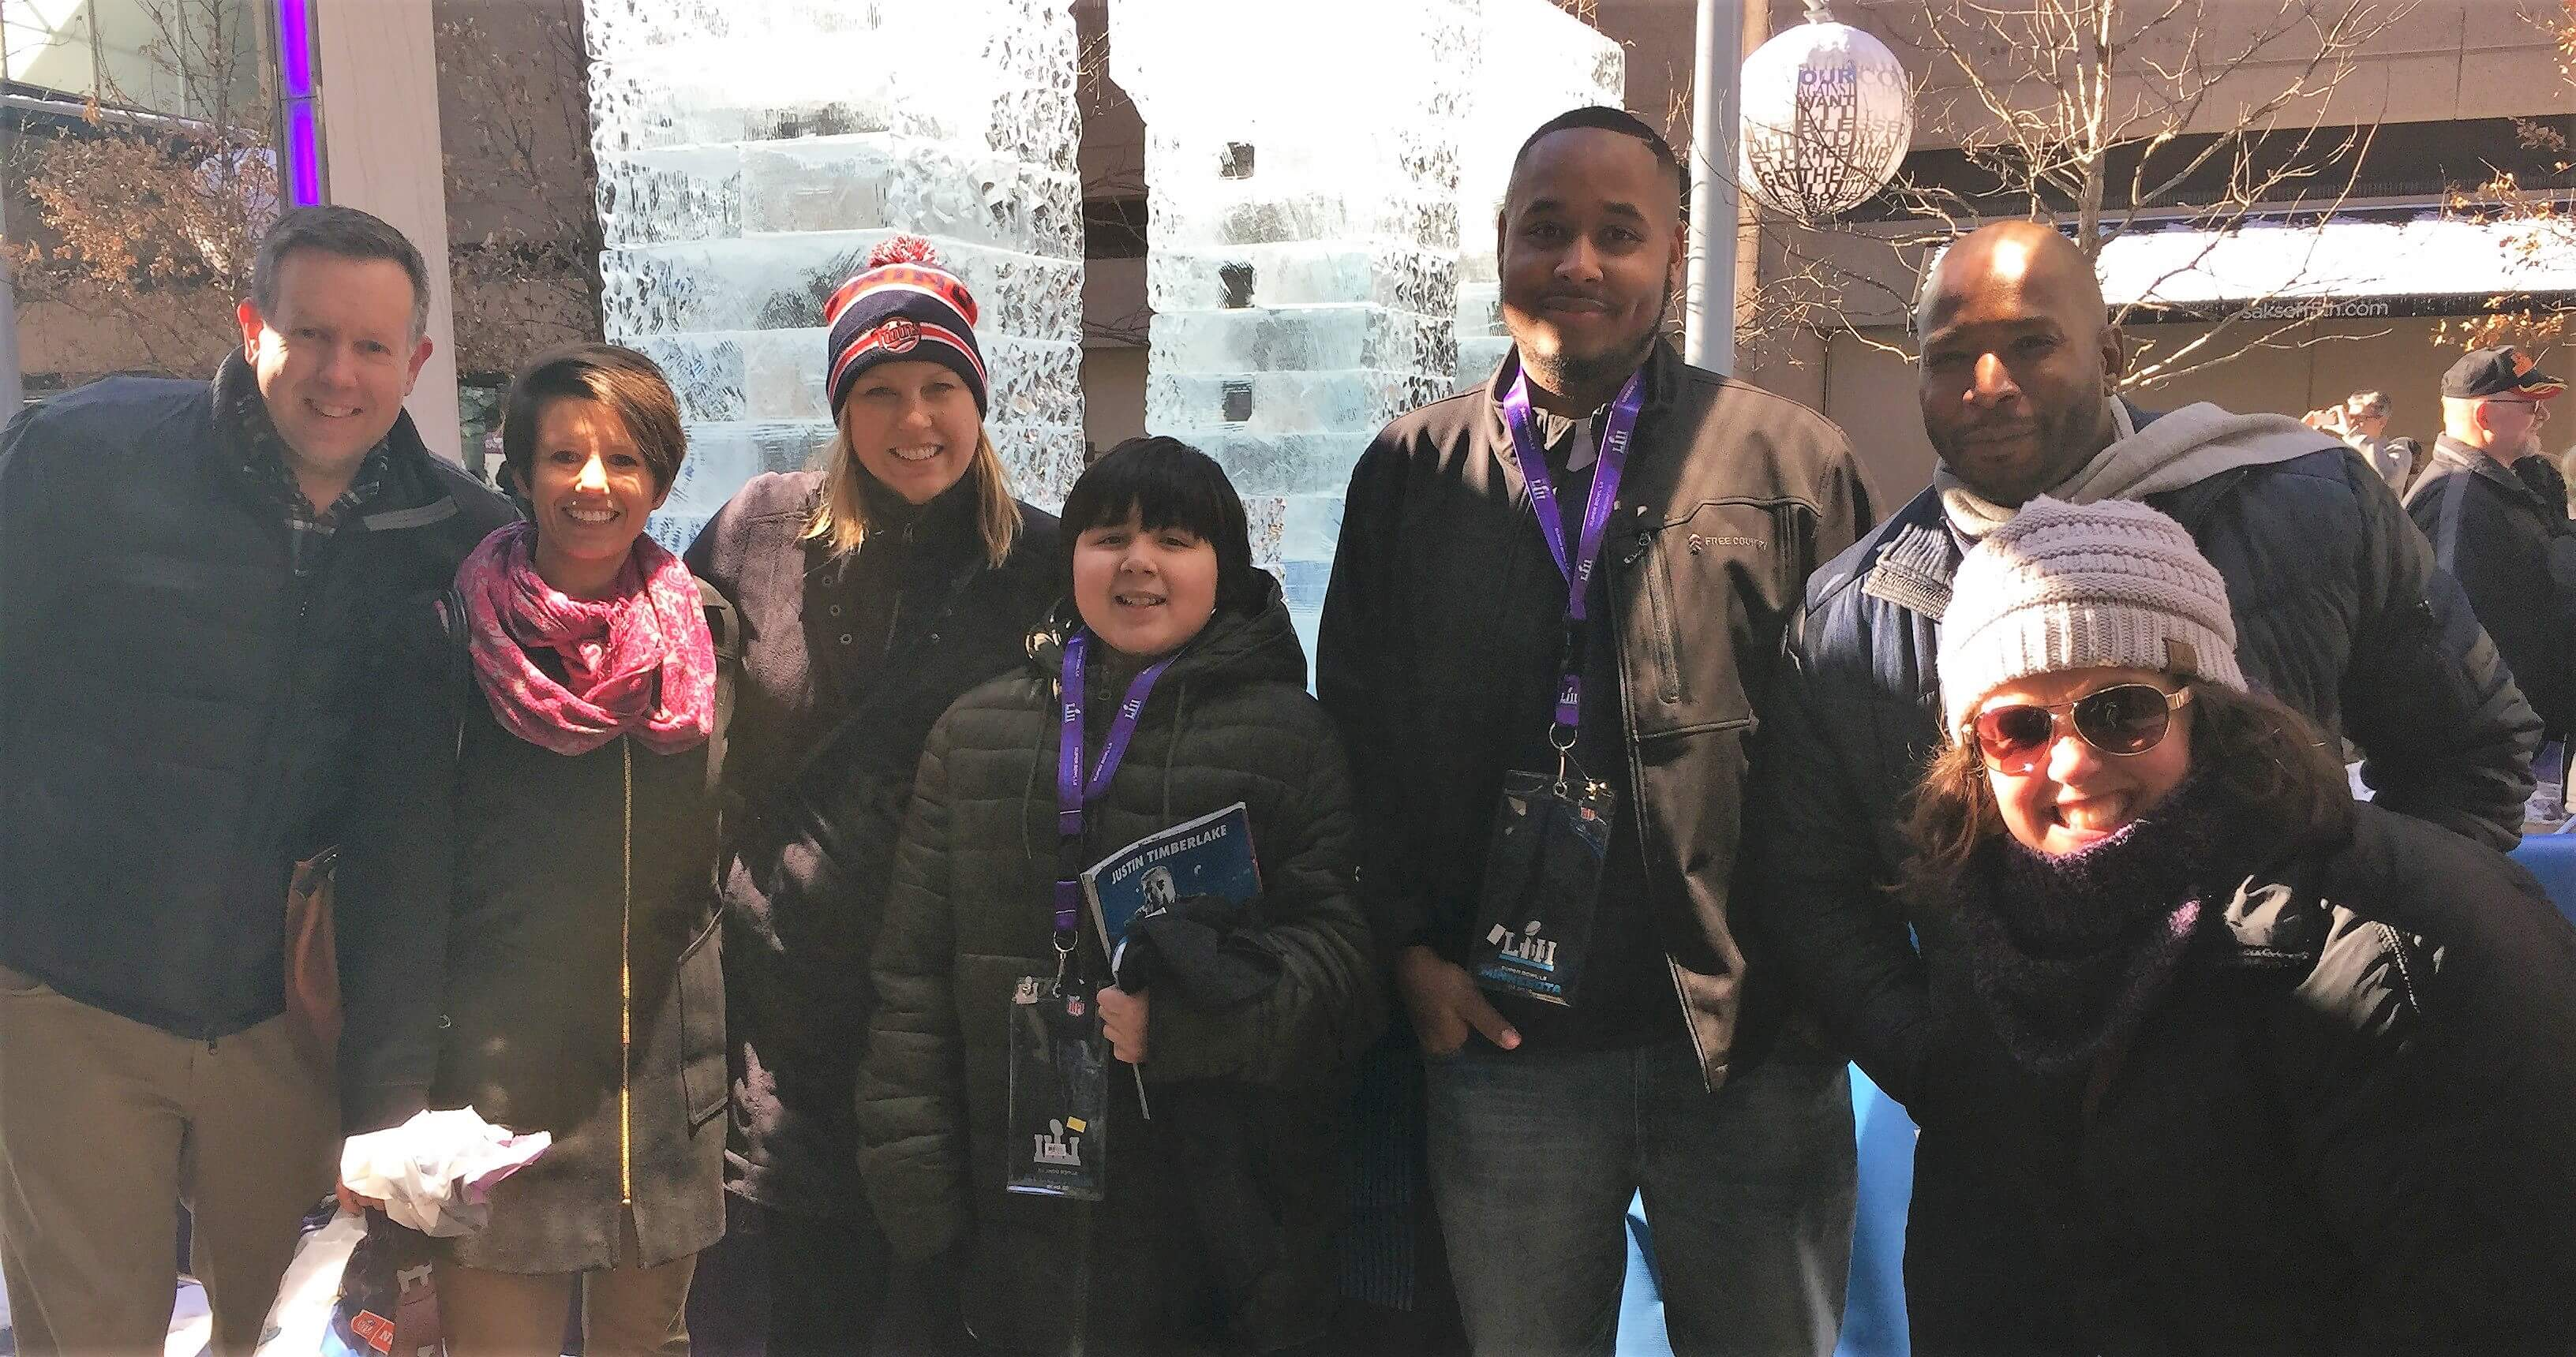 Tickets for Kids surprises a mentor and mentee pair with tickets to the Super Bowl